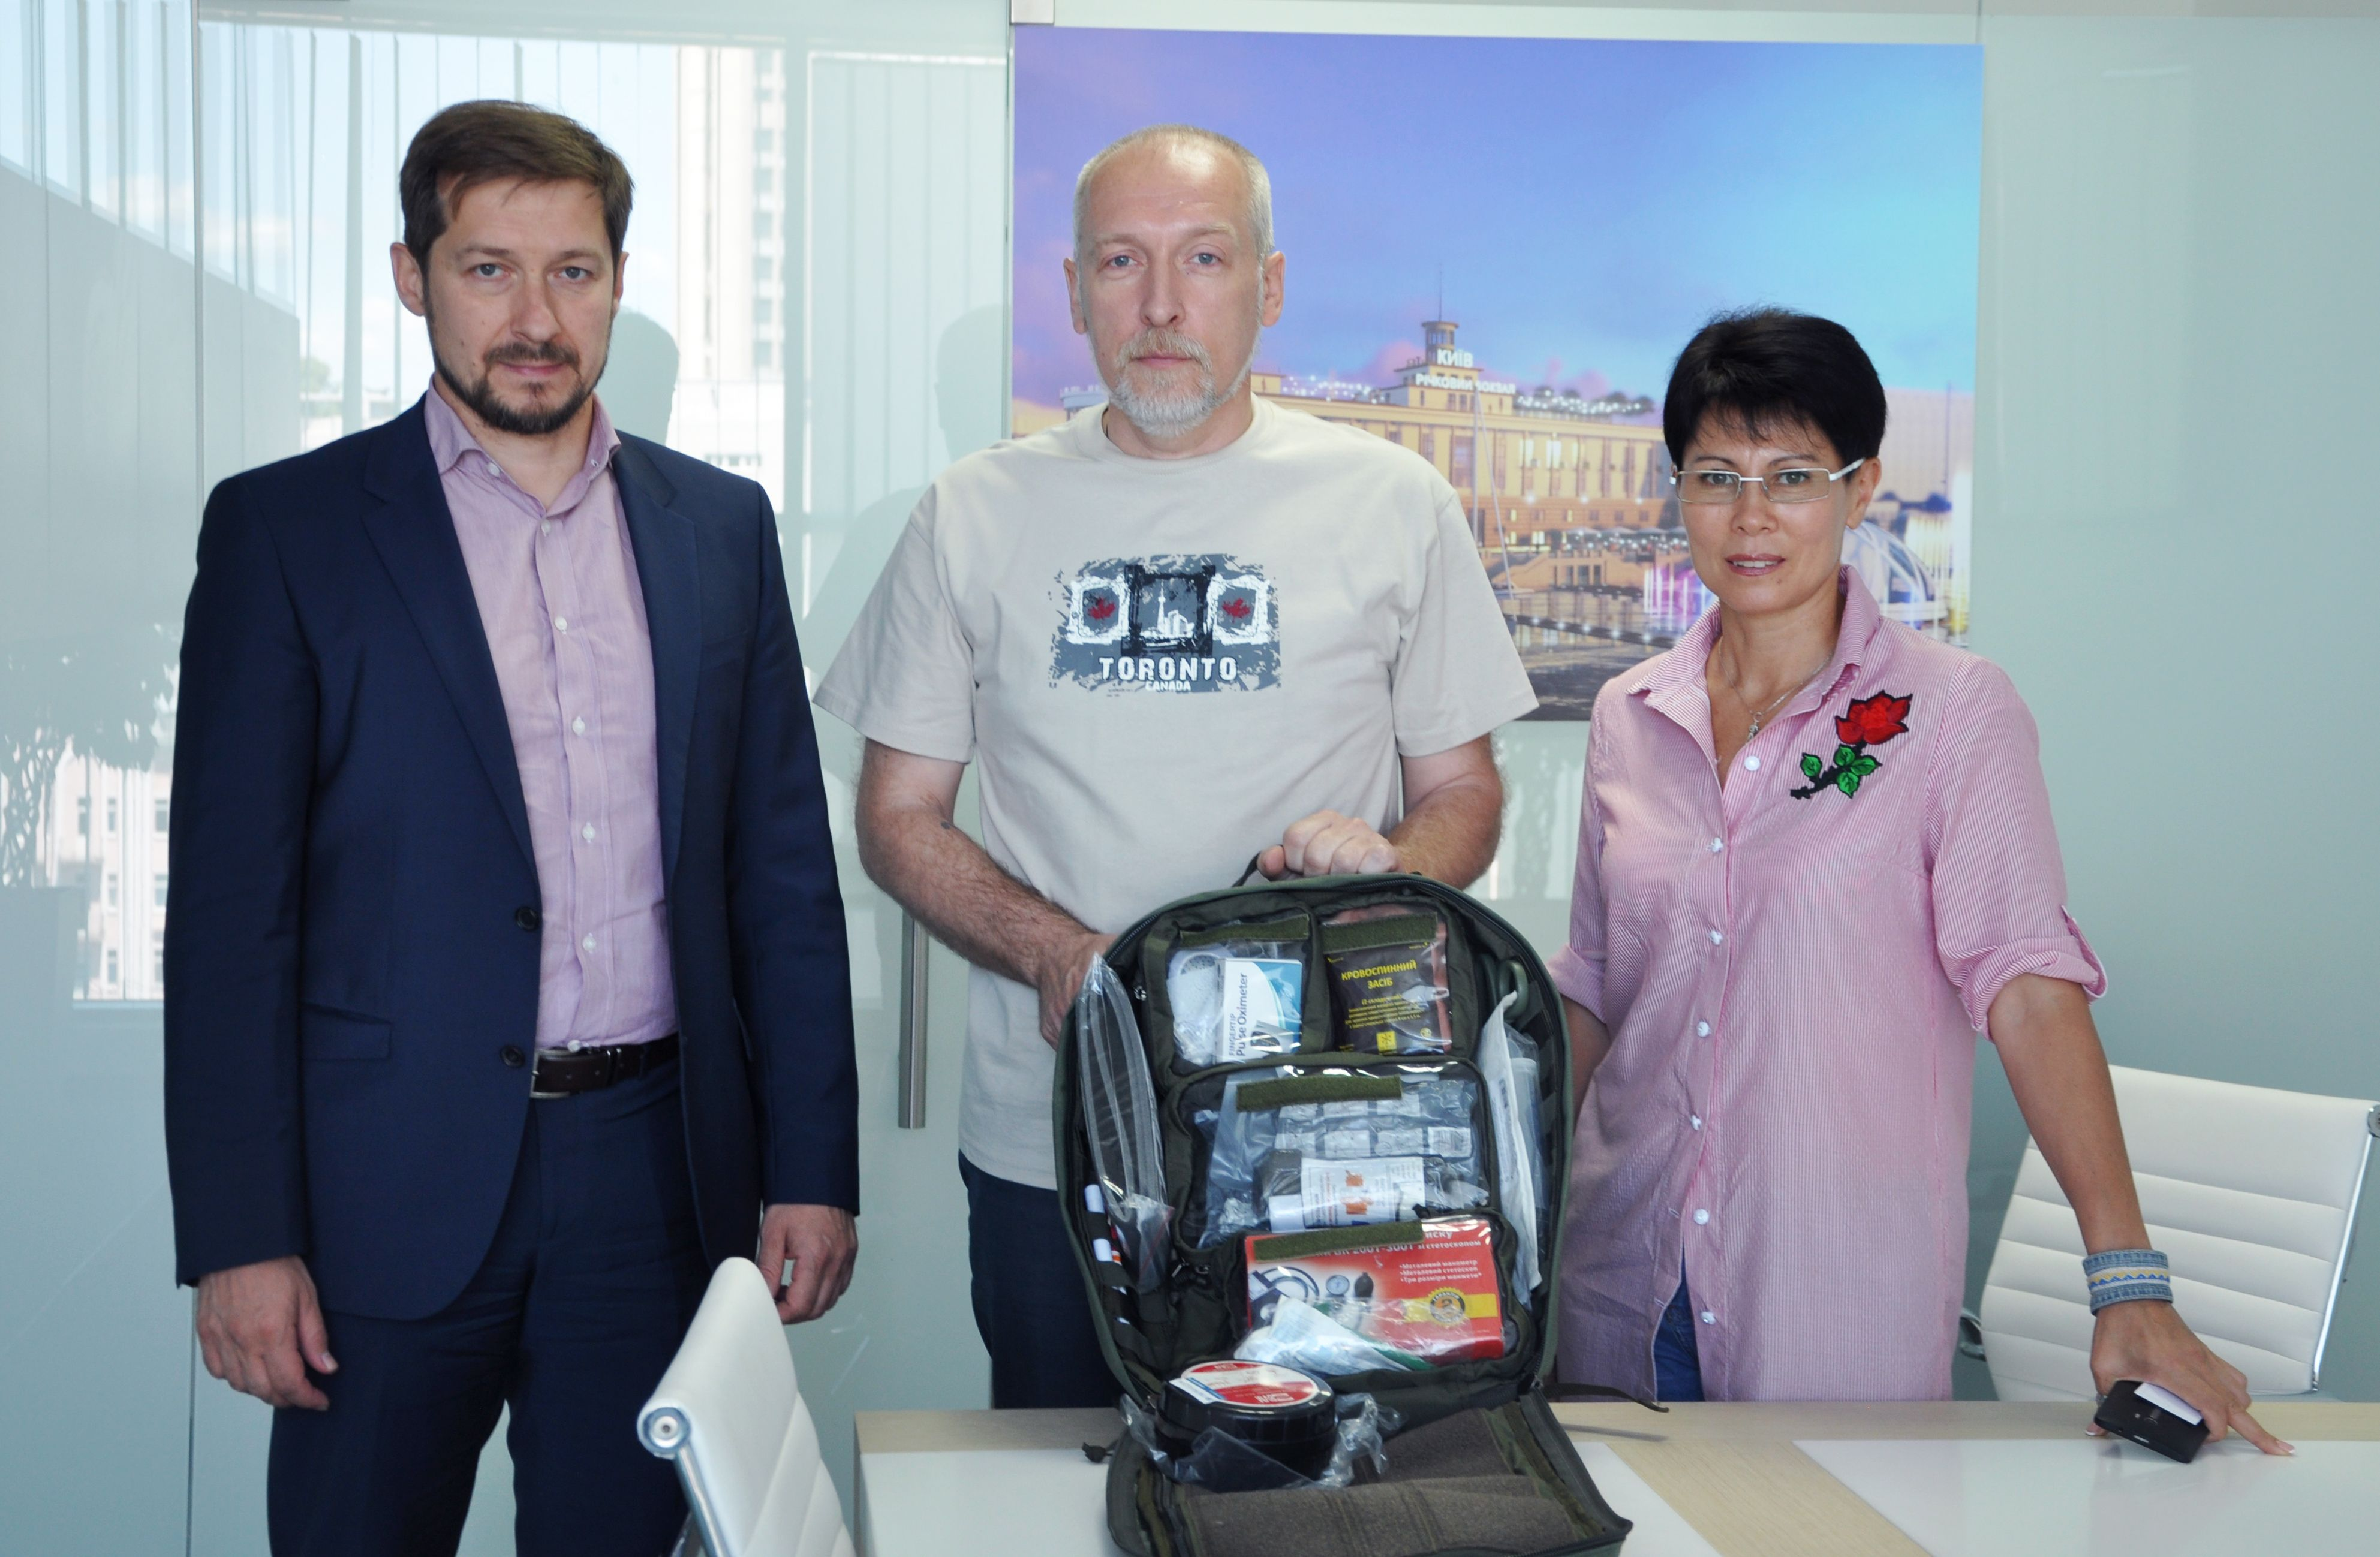 Urban Experts purchased 22 medical backpacks for the military in the ATO zone